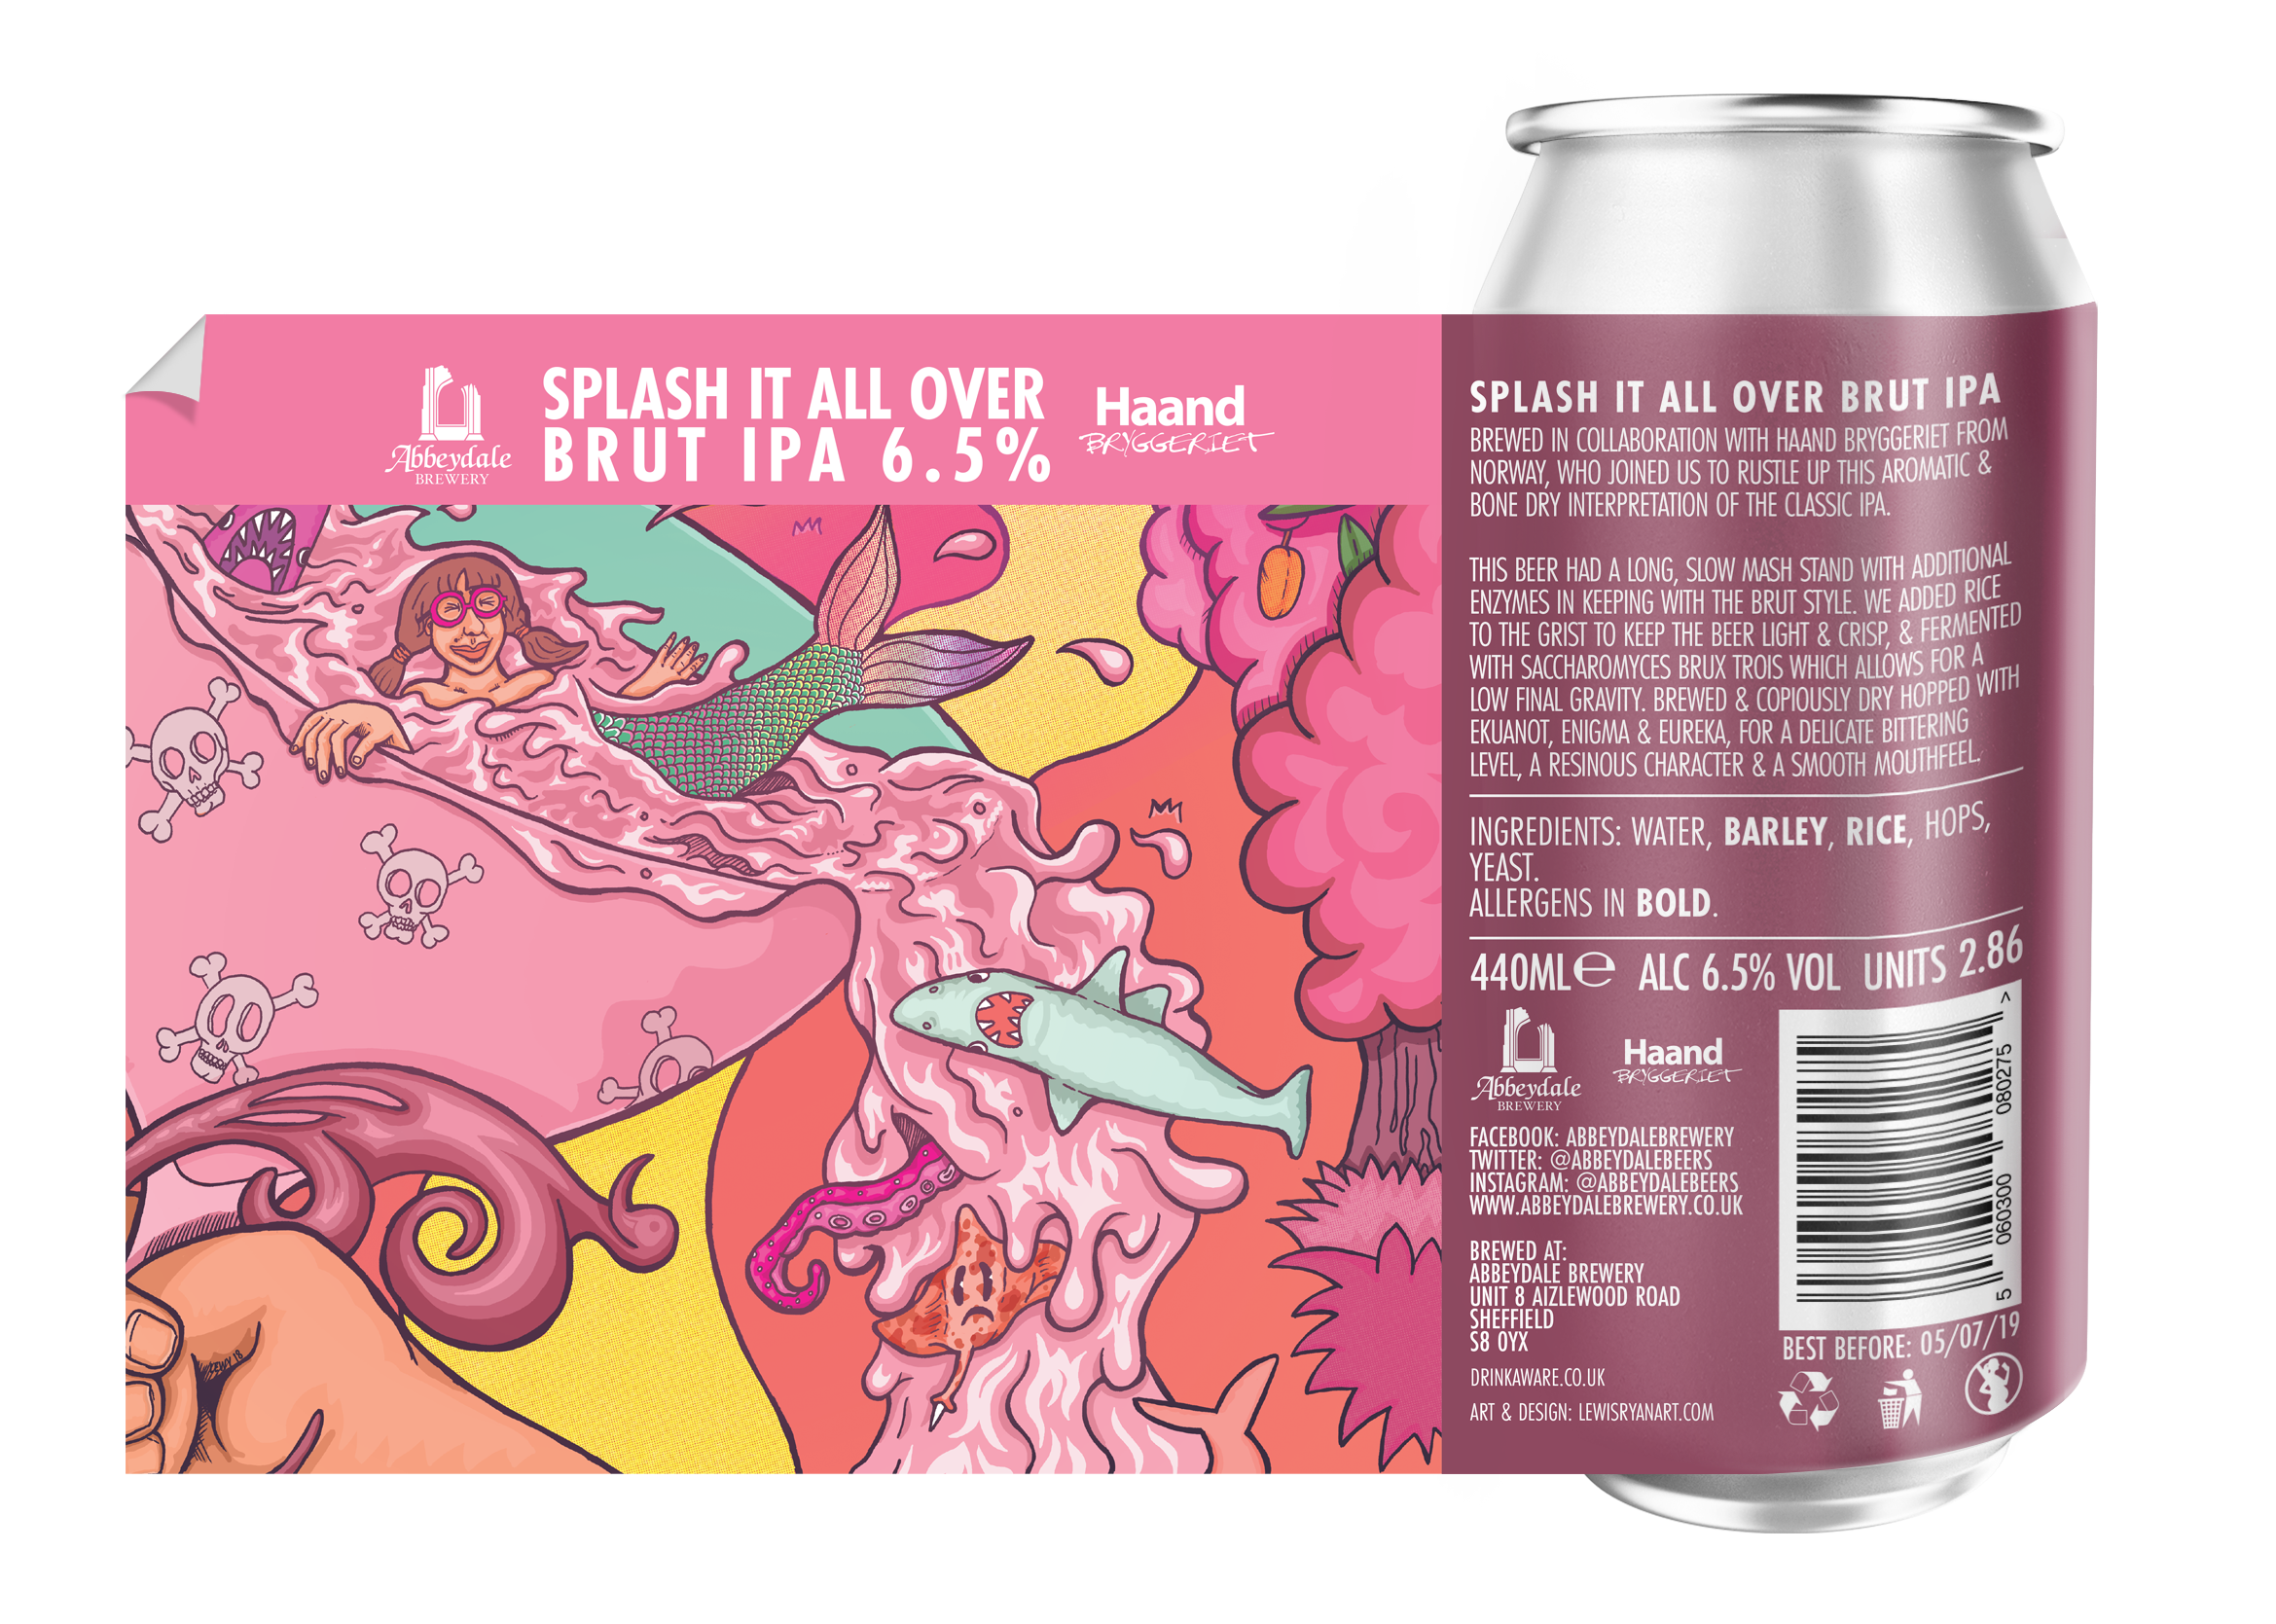 Craft Beer Label Illustration - Abbeydale Brewery - Splash It All Over Brut IPA